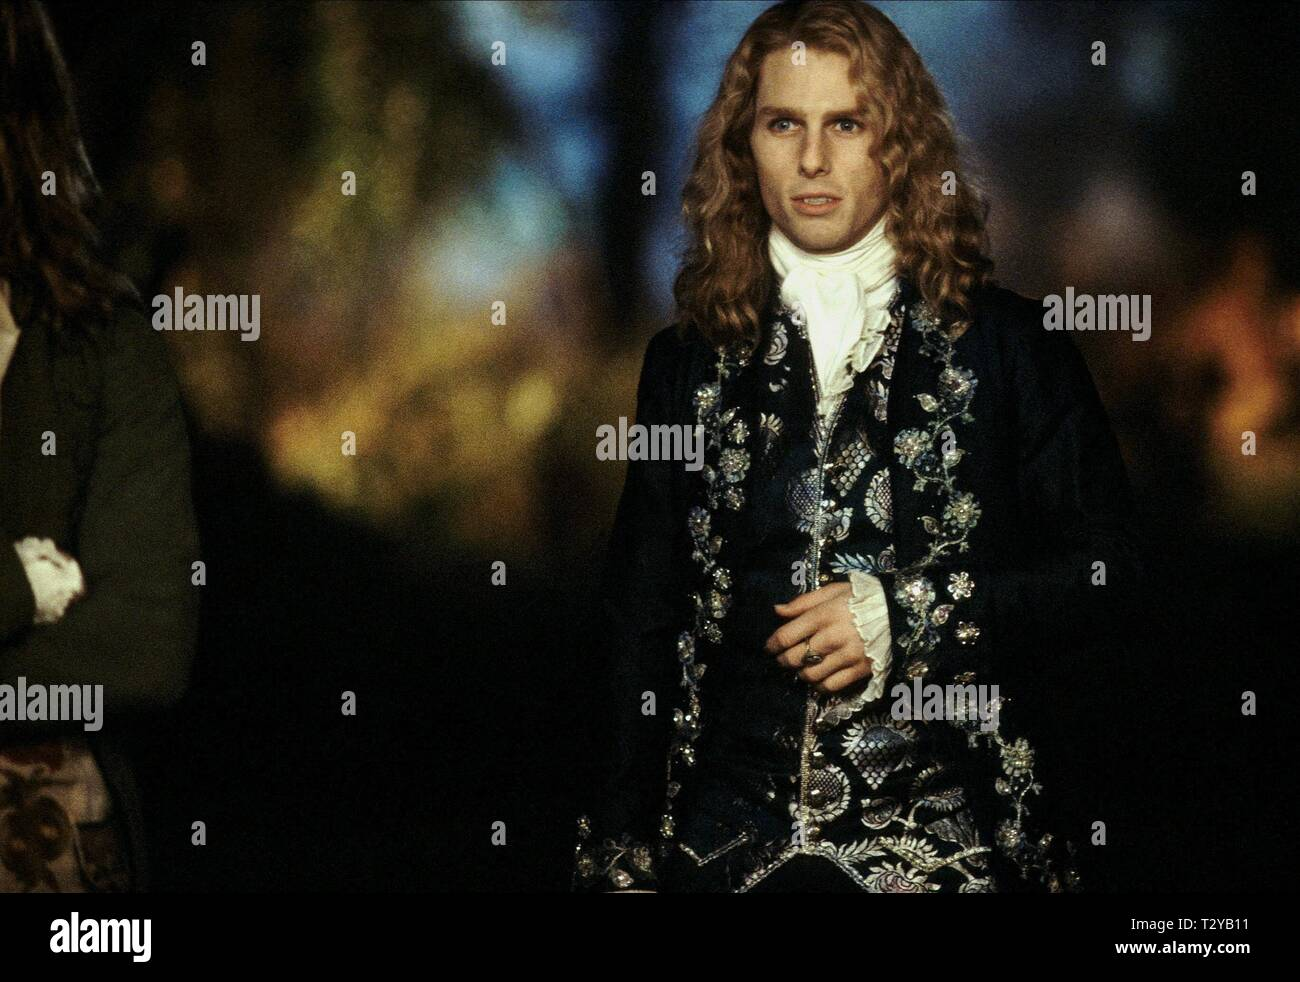 Tom Cruise Interview With The Vampire The Vampire Chronicles 1994 Stock Photo Alamy